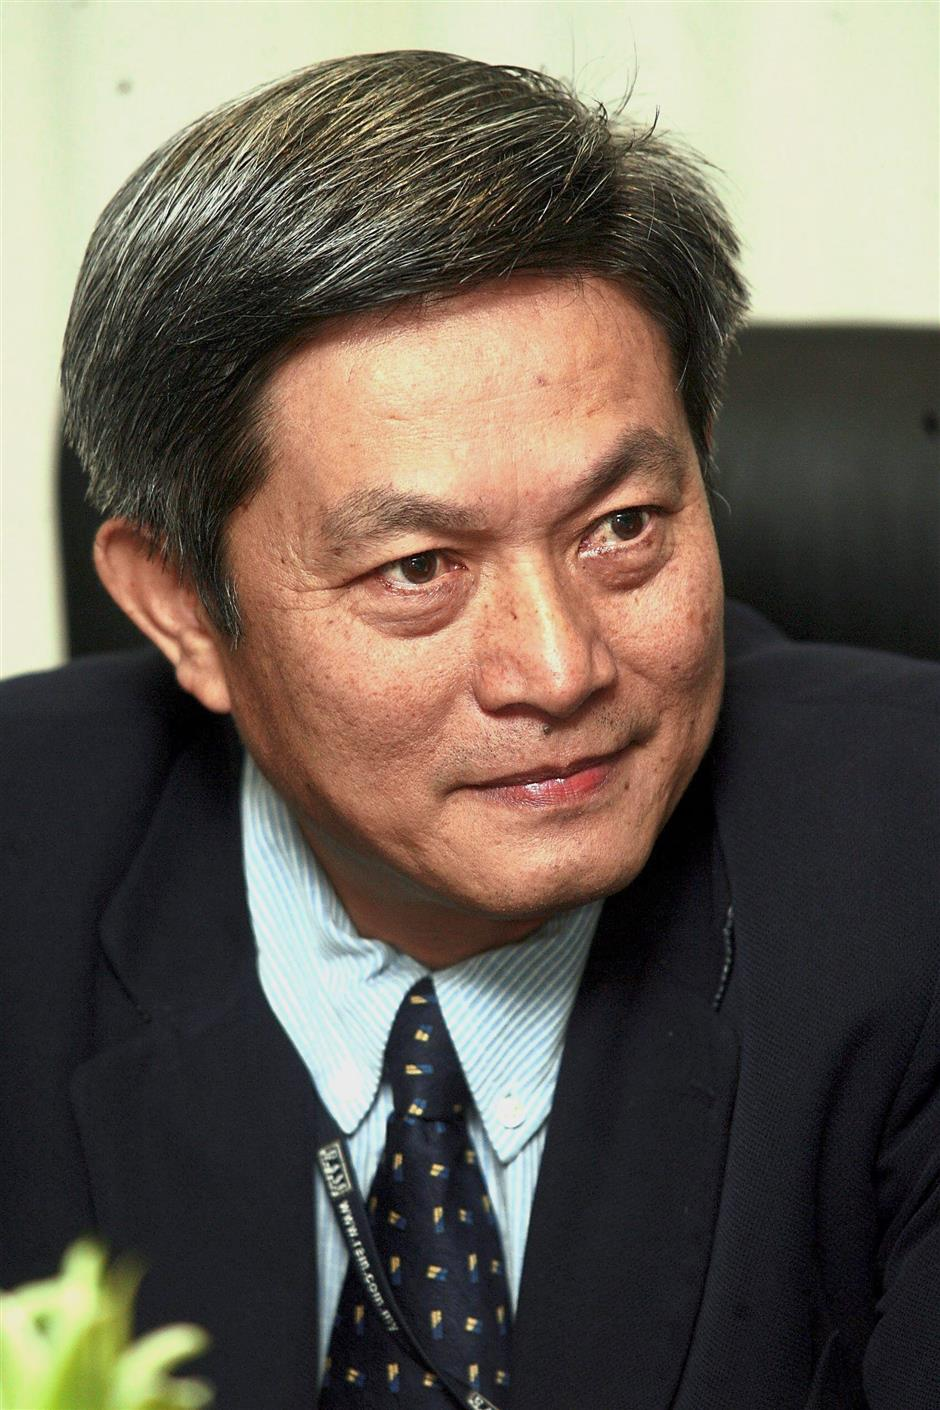 RAM Consultancy Services Sdn Bhd managing director and chief economist Dr Yeah Kim Leng